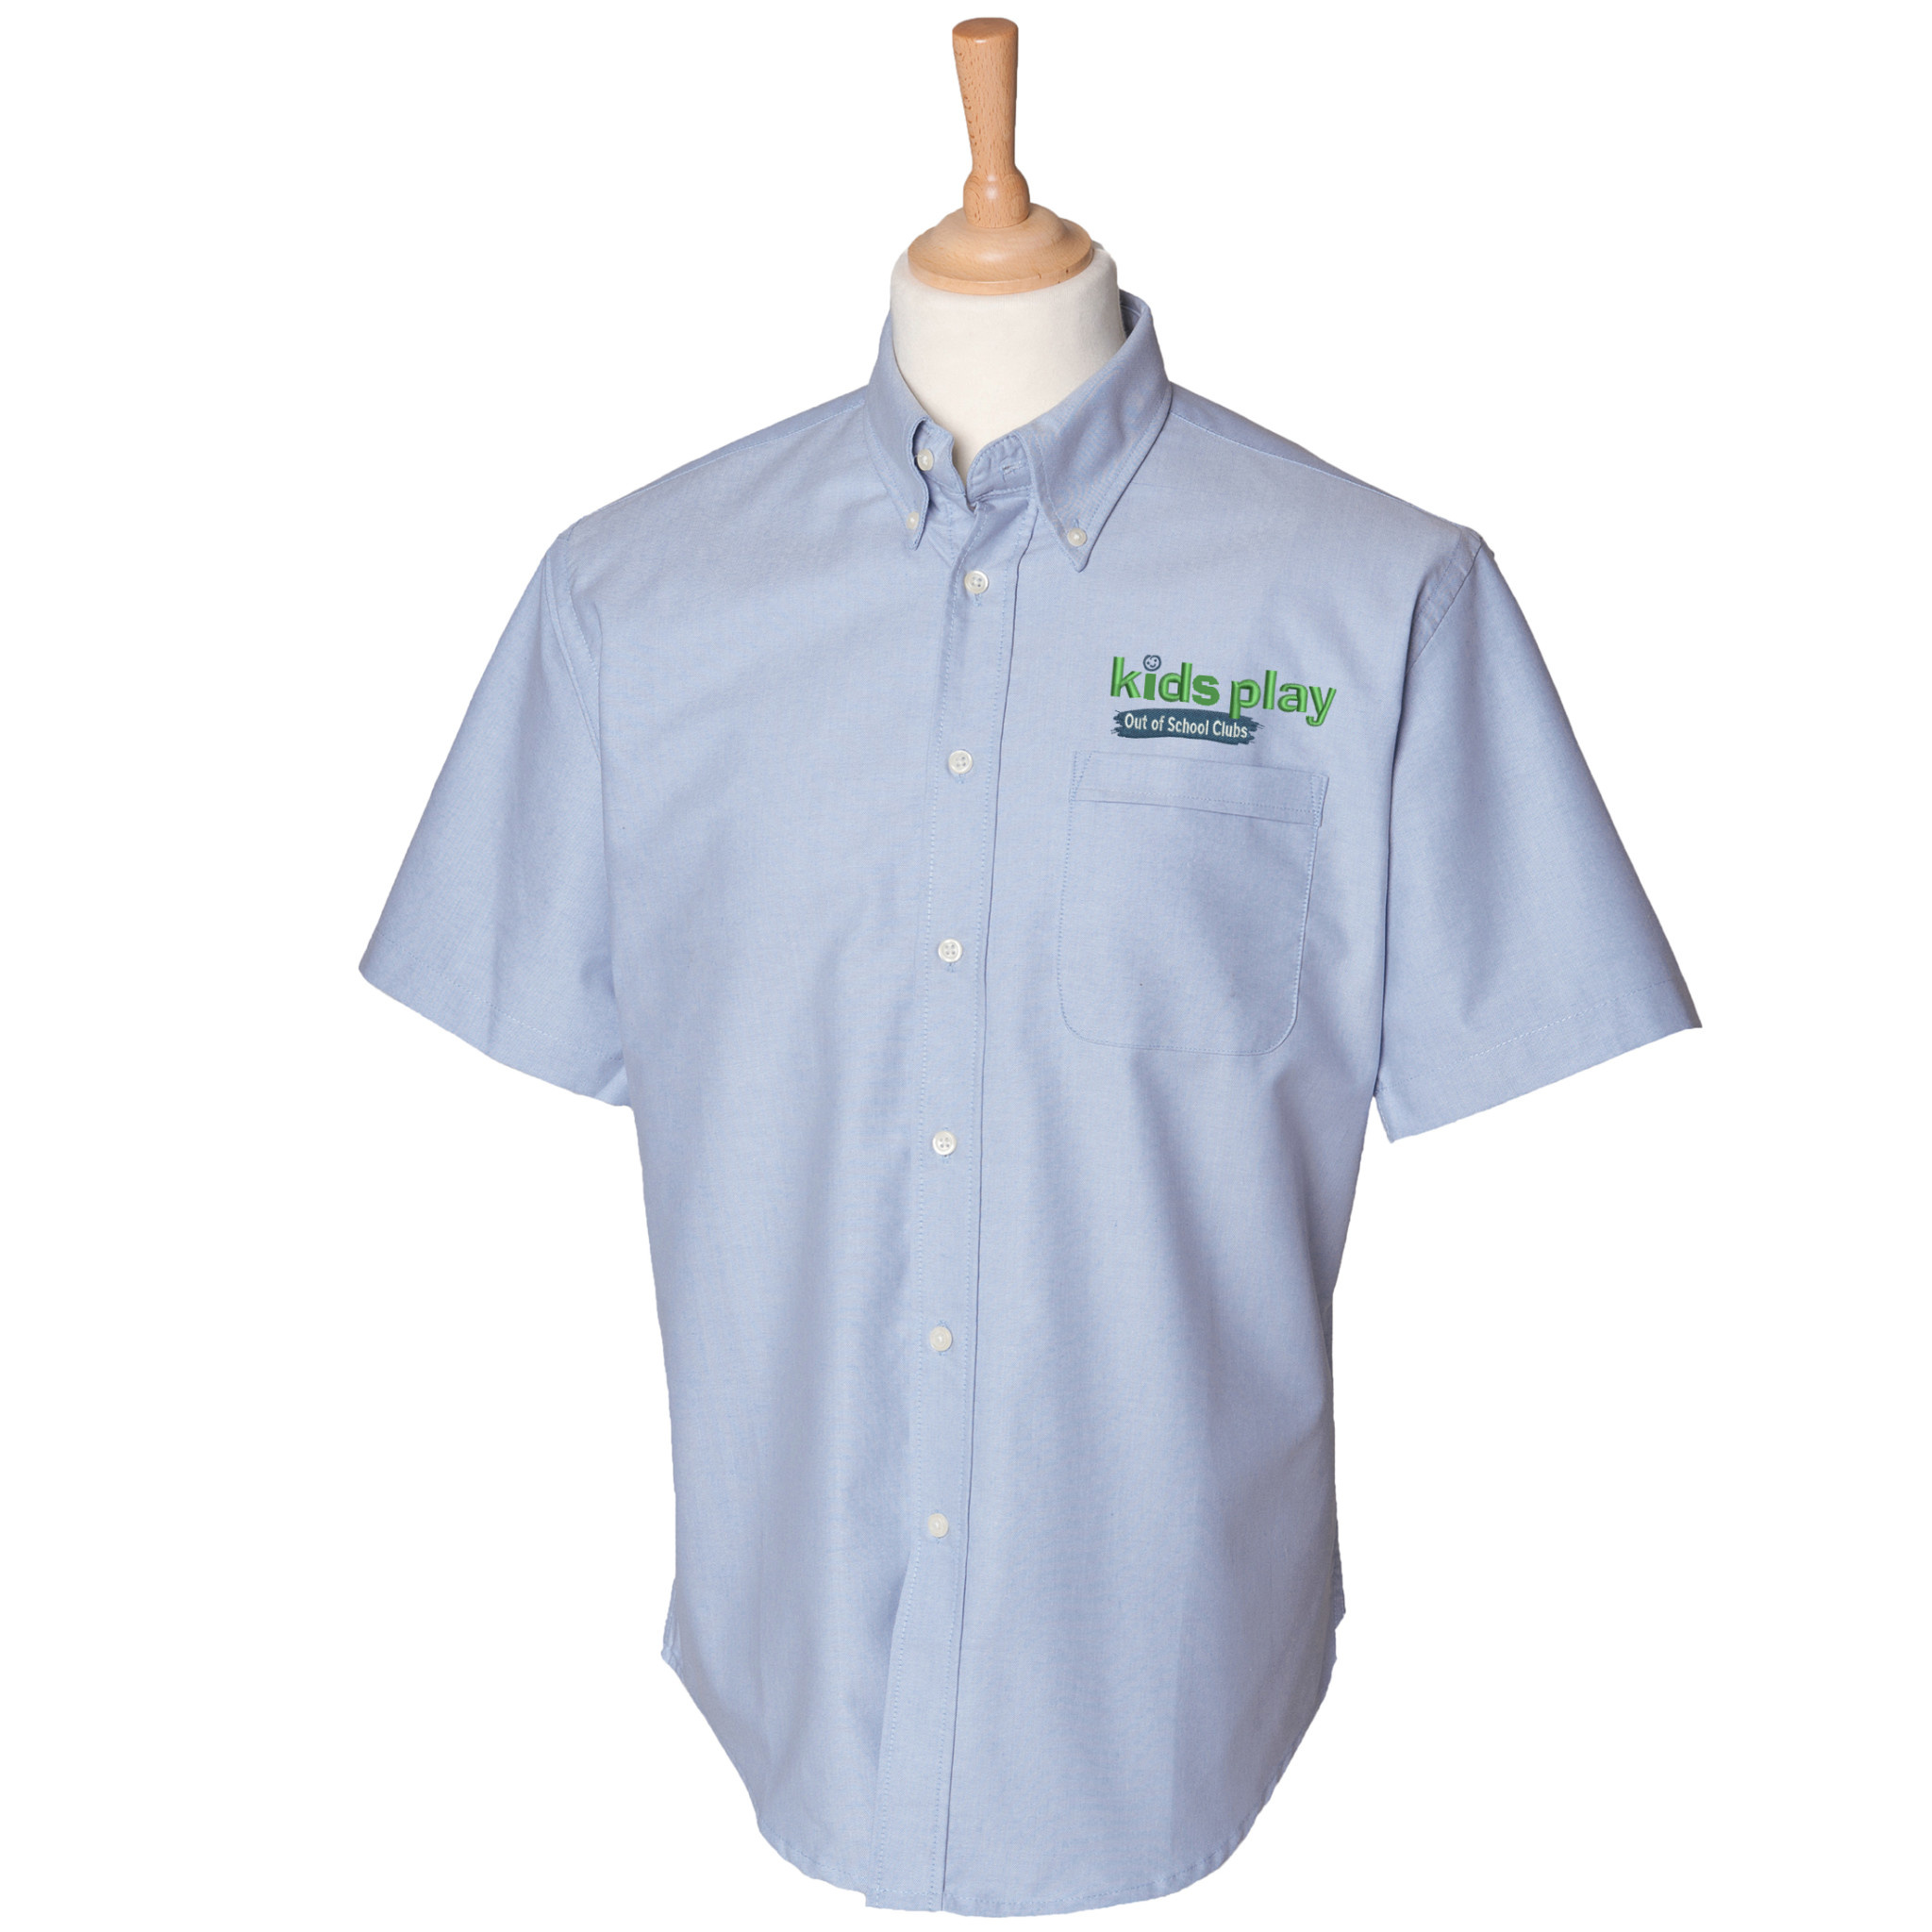 Premium Force Kids Play Mens Out Of School Club S/S Oxford Shirt